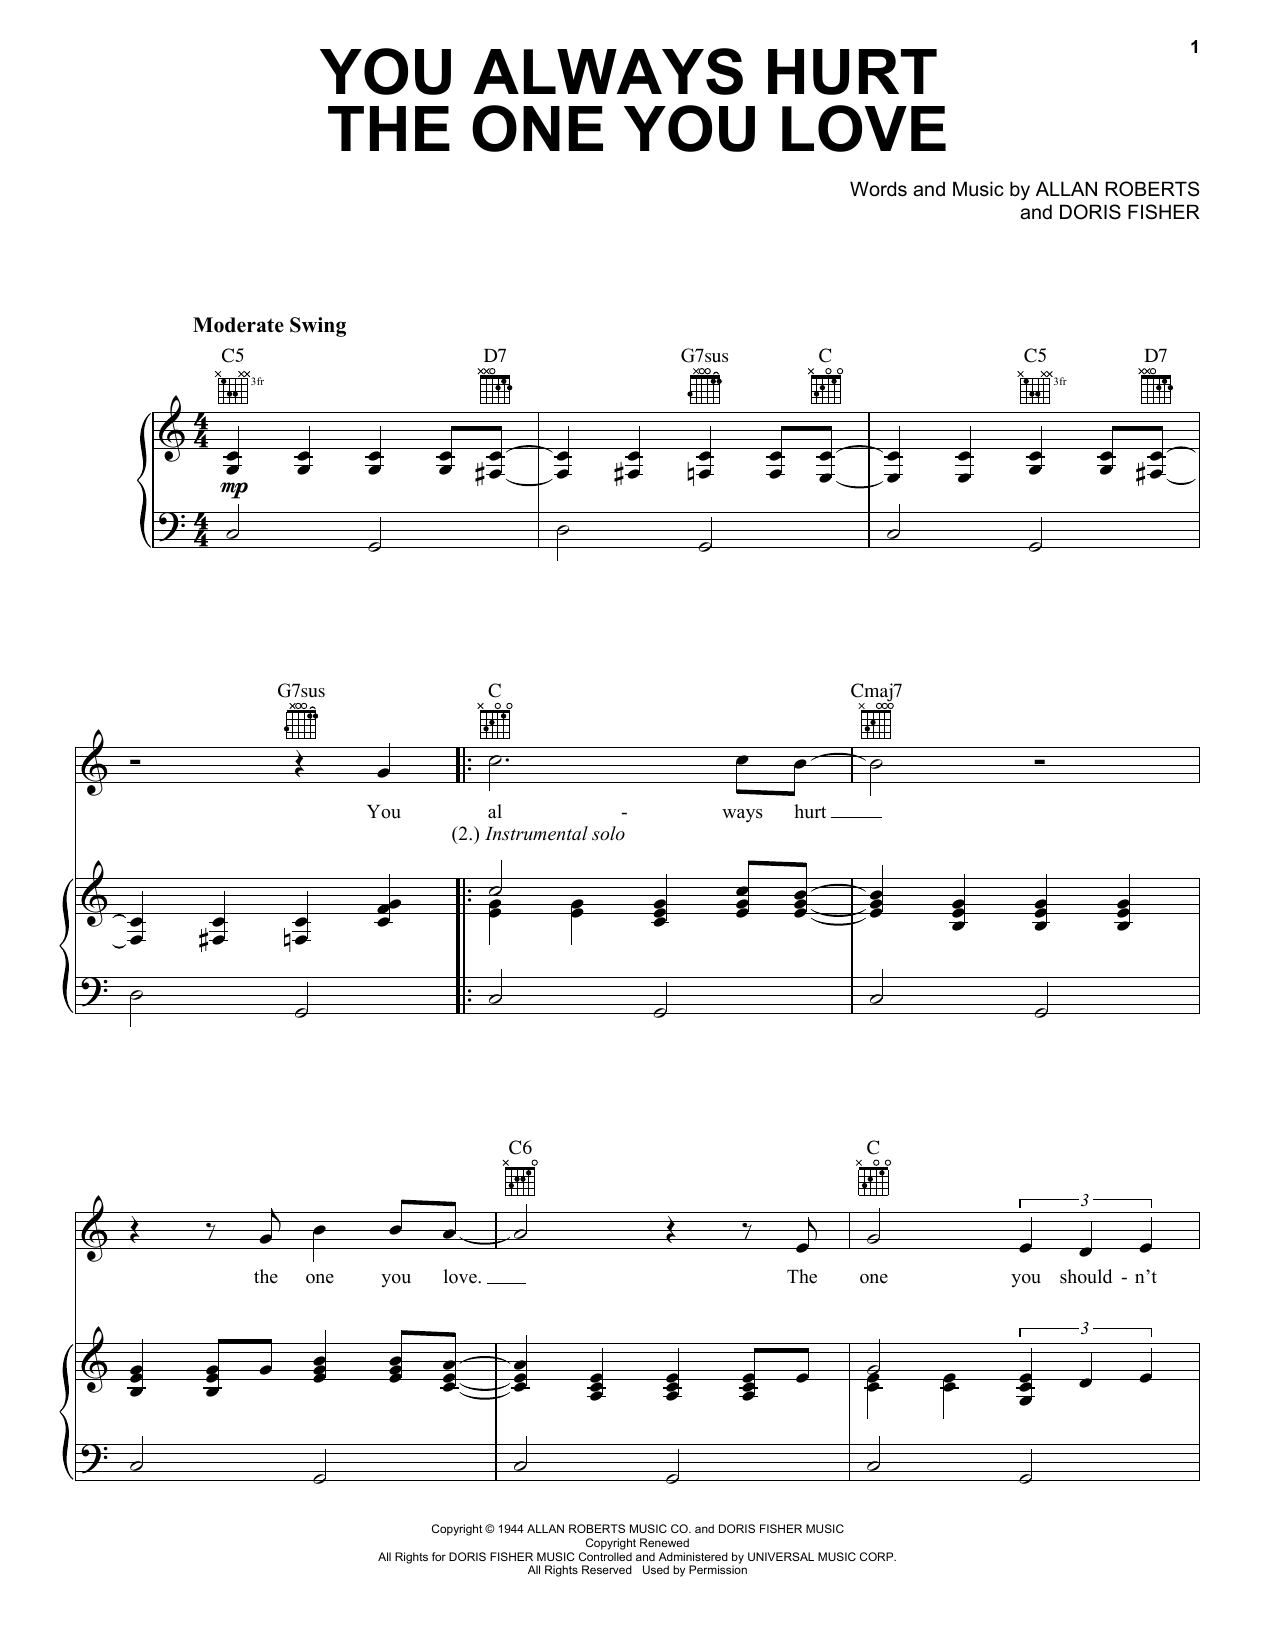 Eric Clapton 'You Always Hurt The One You Love' Sheet Music Notes, Chords |  Download Printable Piano, Vocal & Guitar (Right-Hand Melody) - SKU: 403022